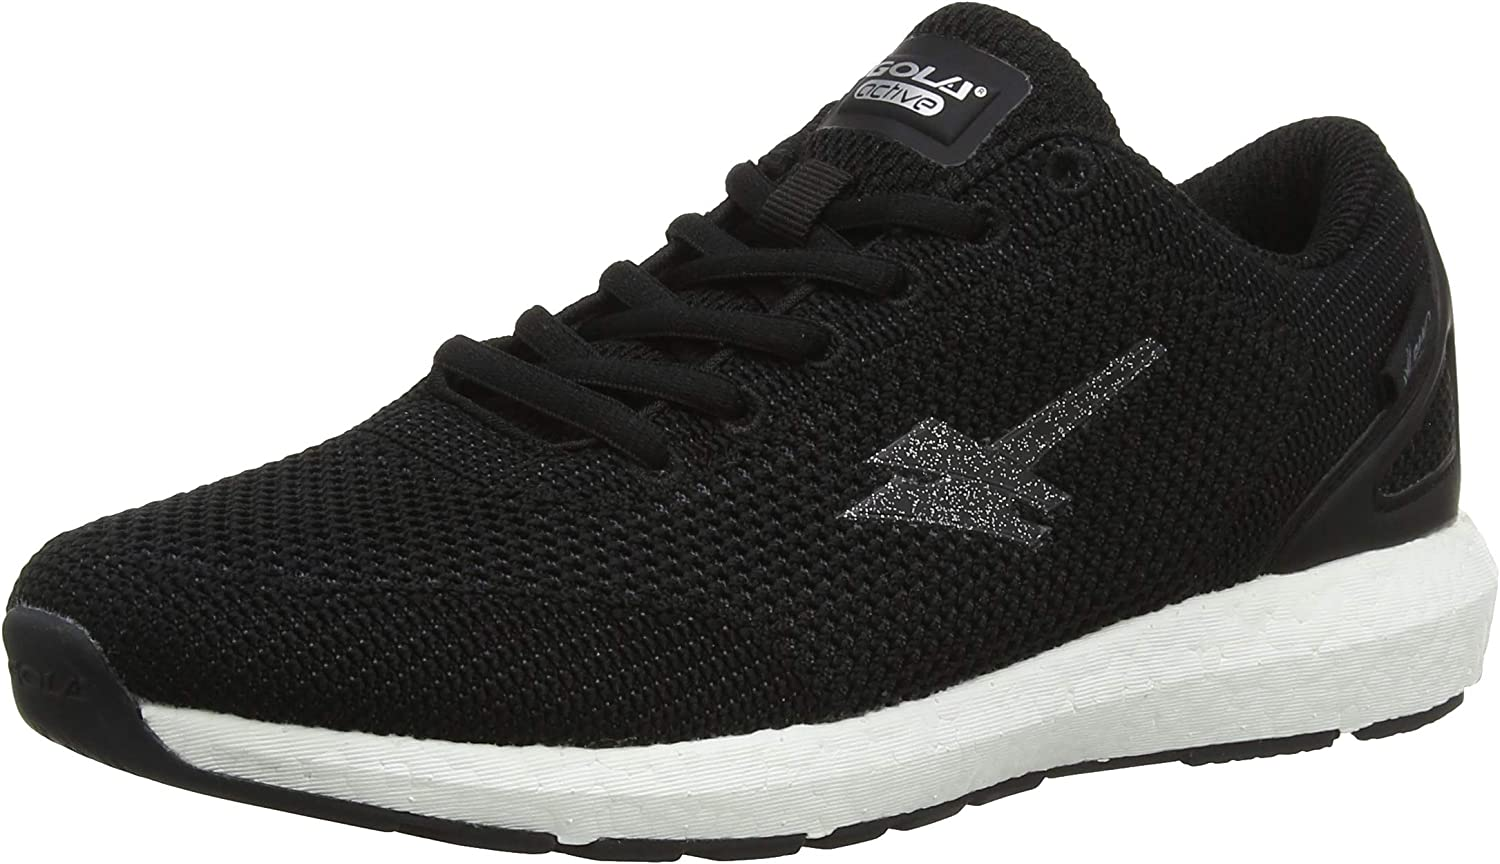 Gola Active X-Pand Swift Black Womens Running Trail shoes